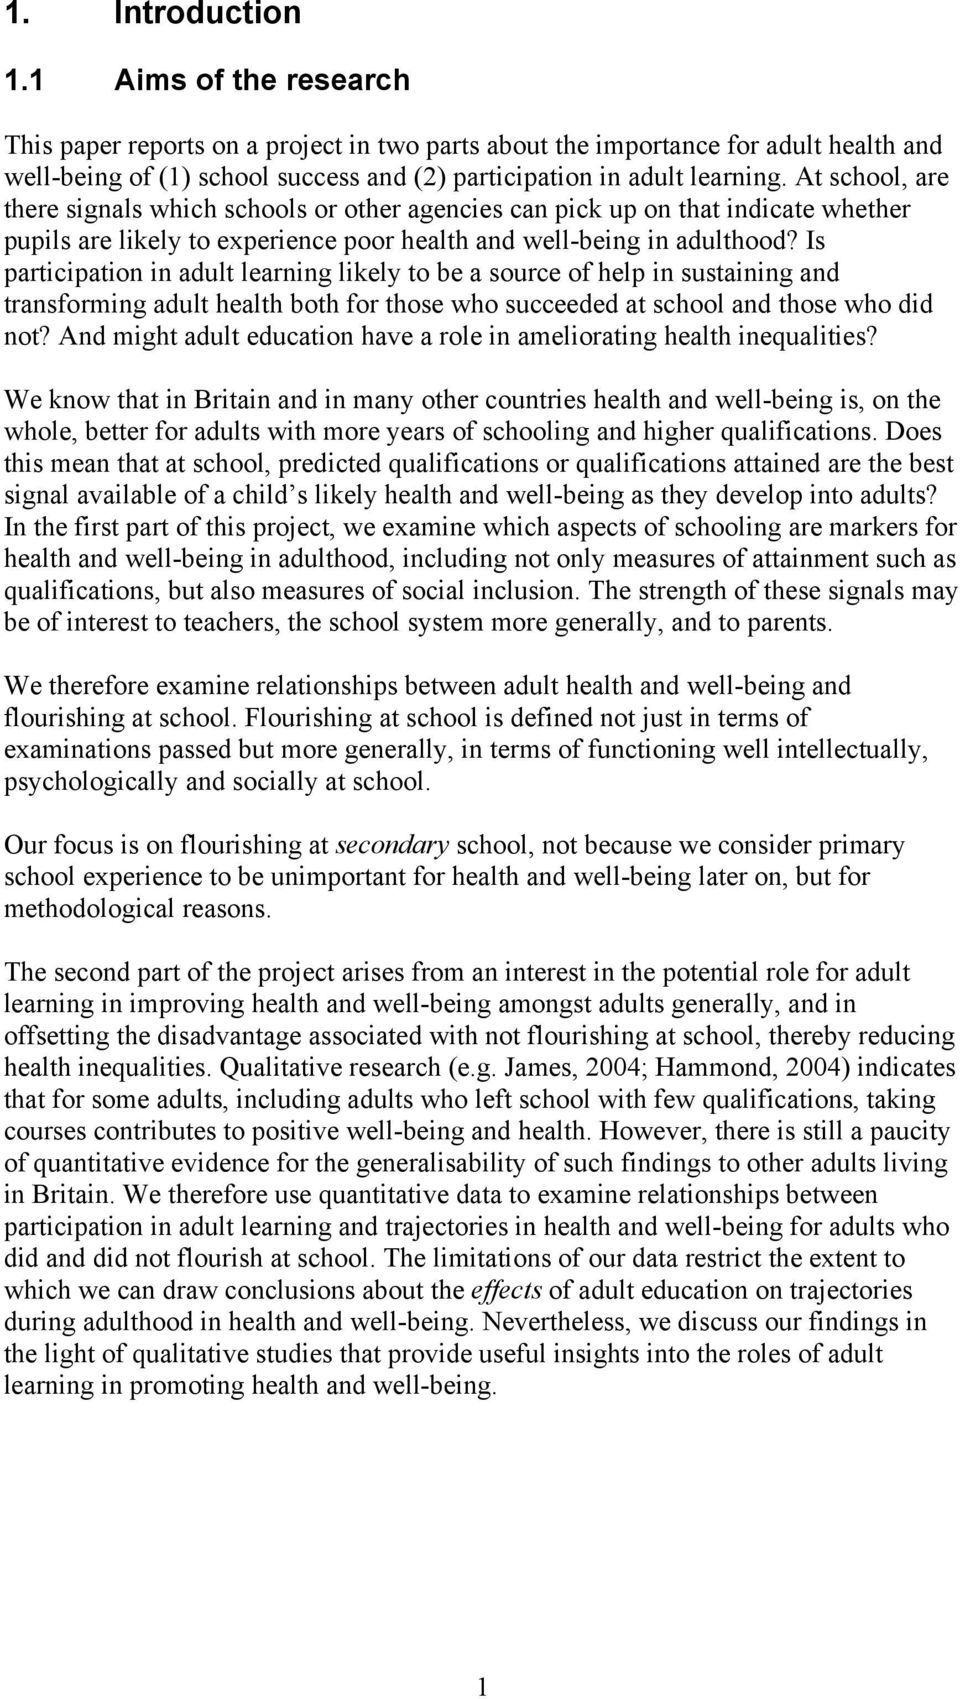 At school, are there signals which schools or other agencies can pick up on that indicate whether pupils are likely to experience poor health and well-being in adulthood?